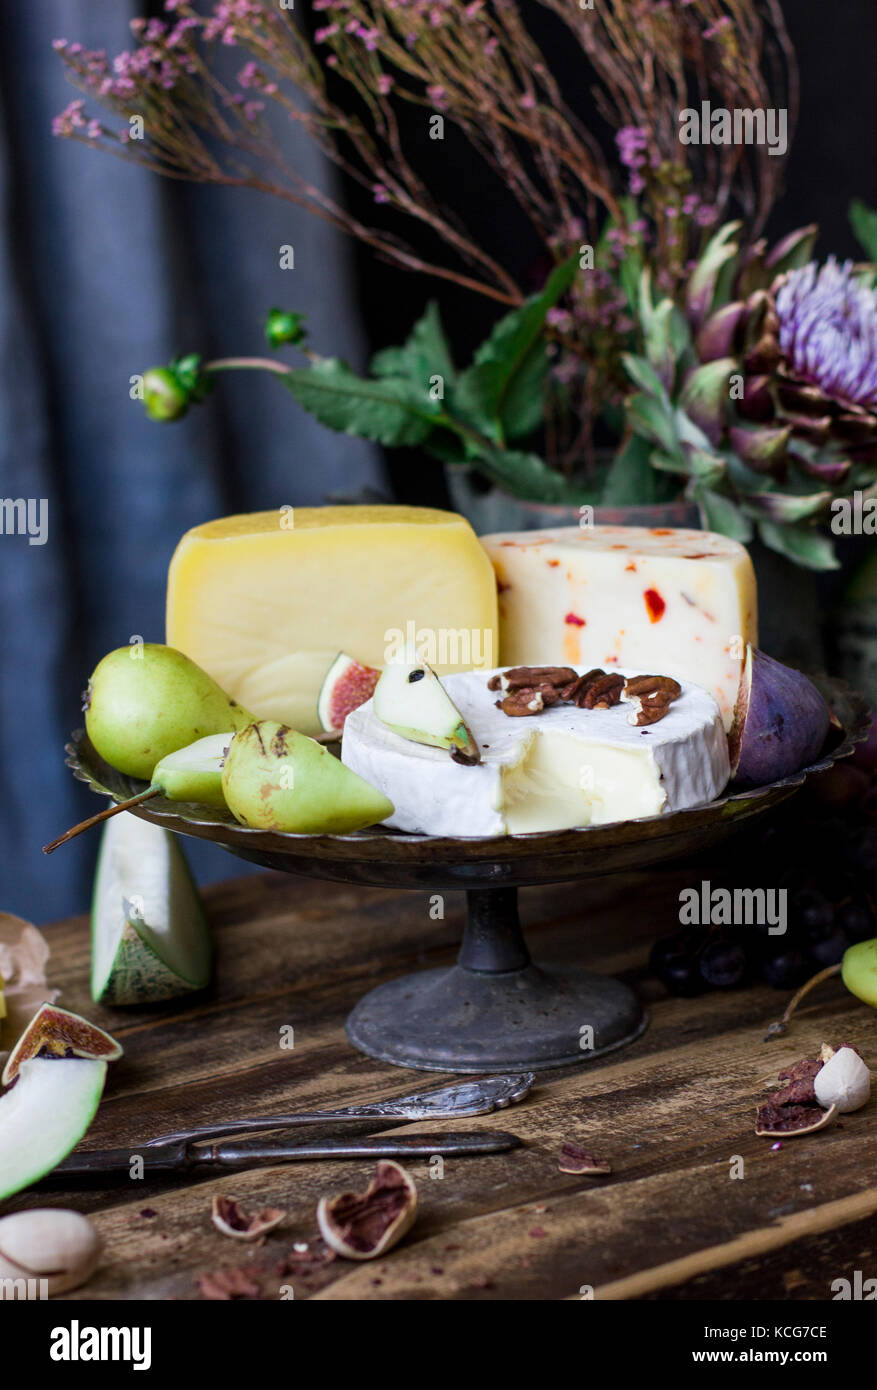 The different cheese, fresh fruit and garden flowers on old wood background - Stock Image